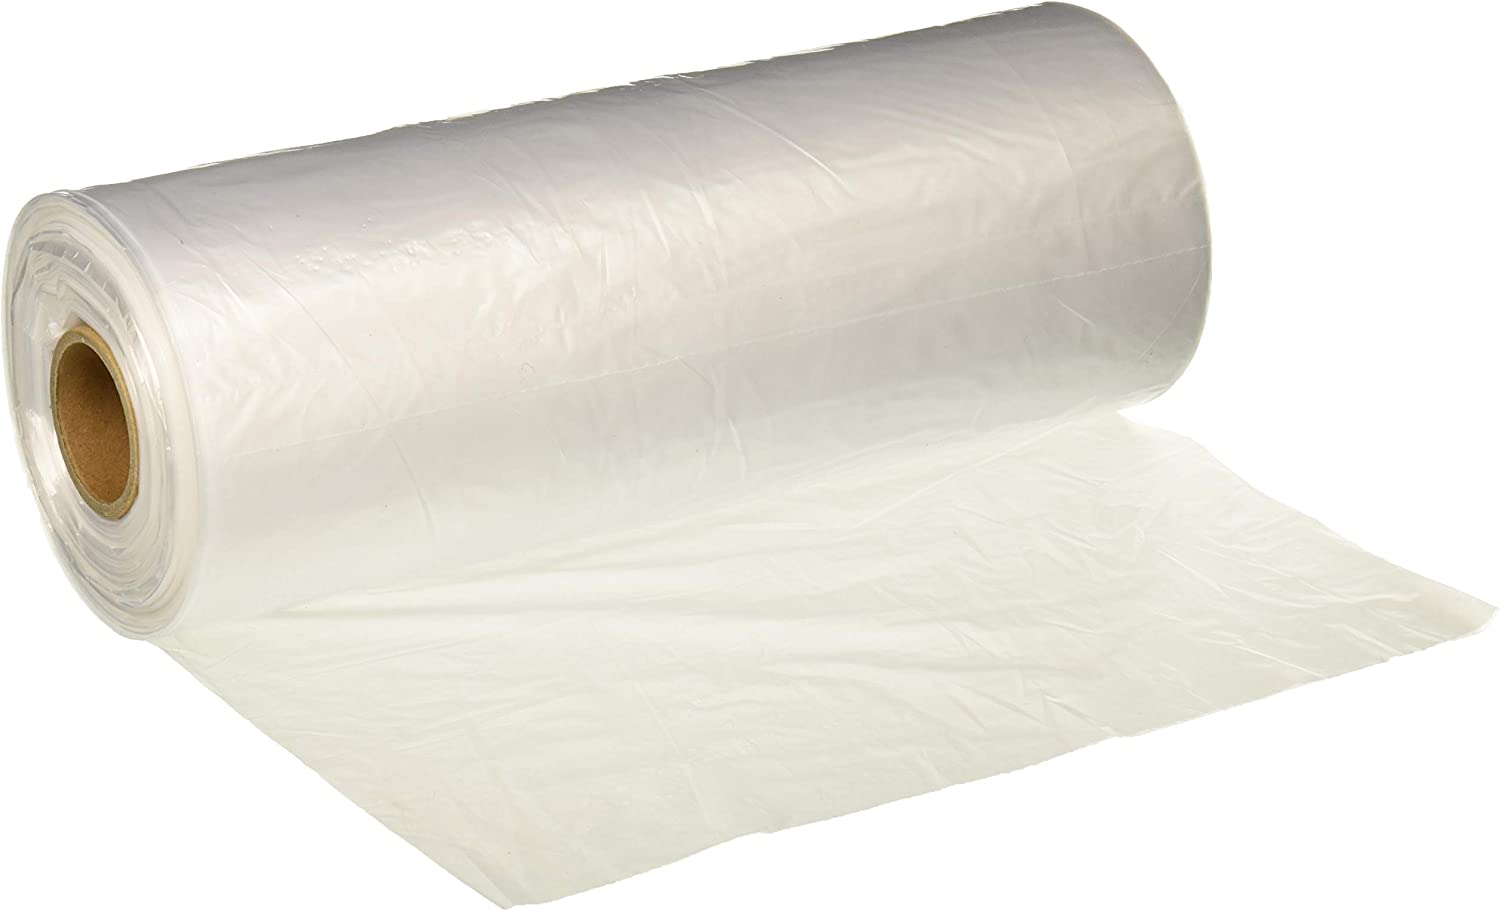 """Party Bargains 10"""" X 15"""" Plastic Unprinted Produce Bag on a Roll, Bread and Grocery Clear Bag, 450 Bags"""